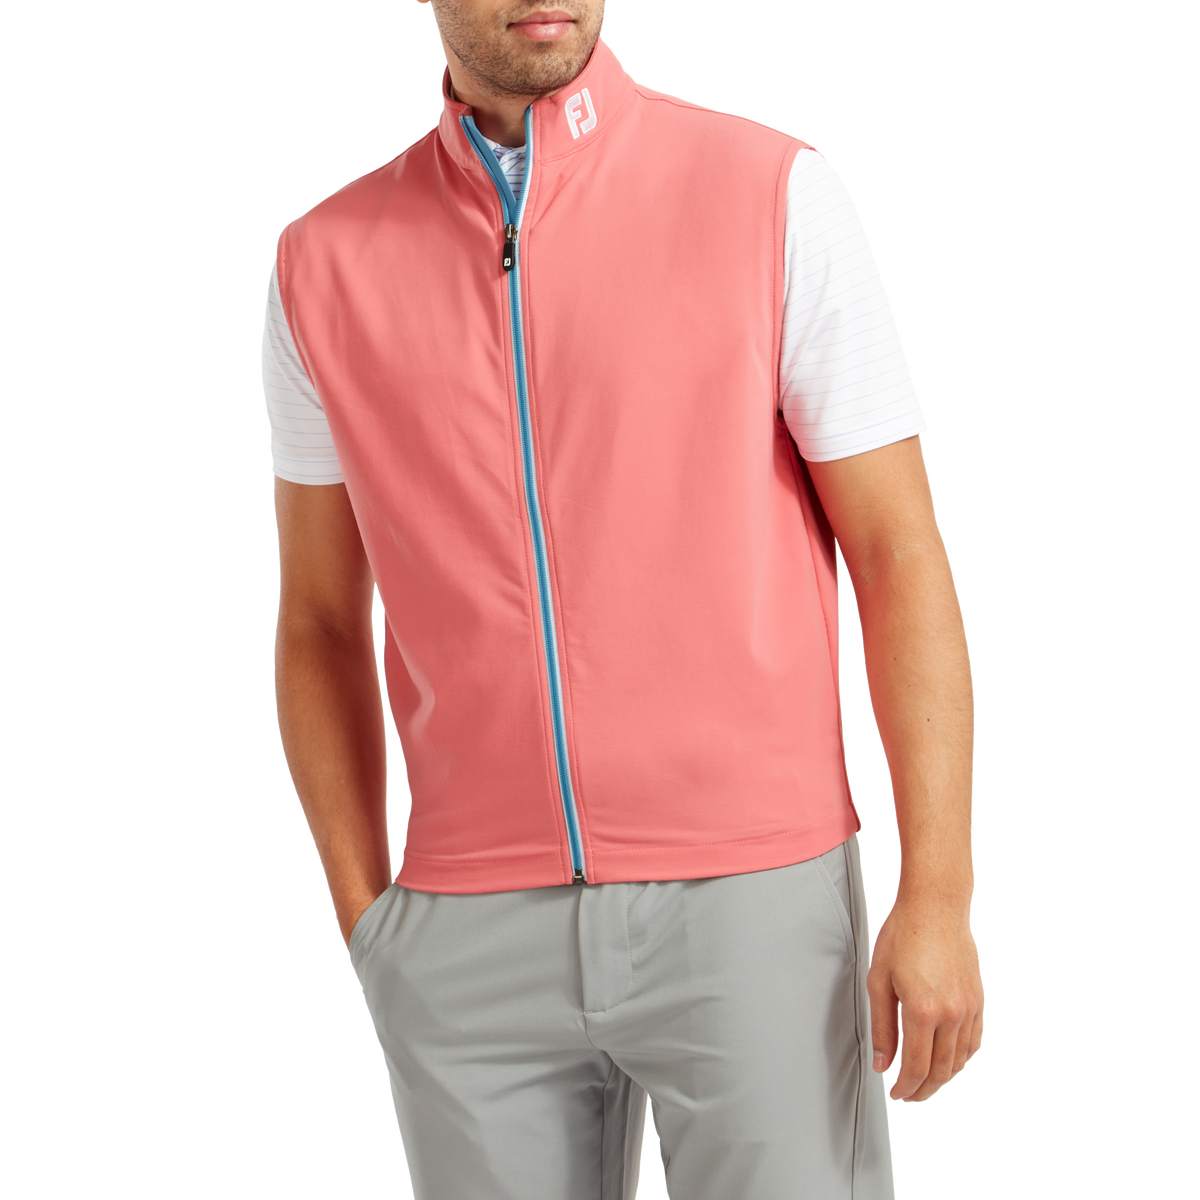 Full Zip Knit Vest